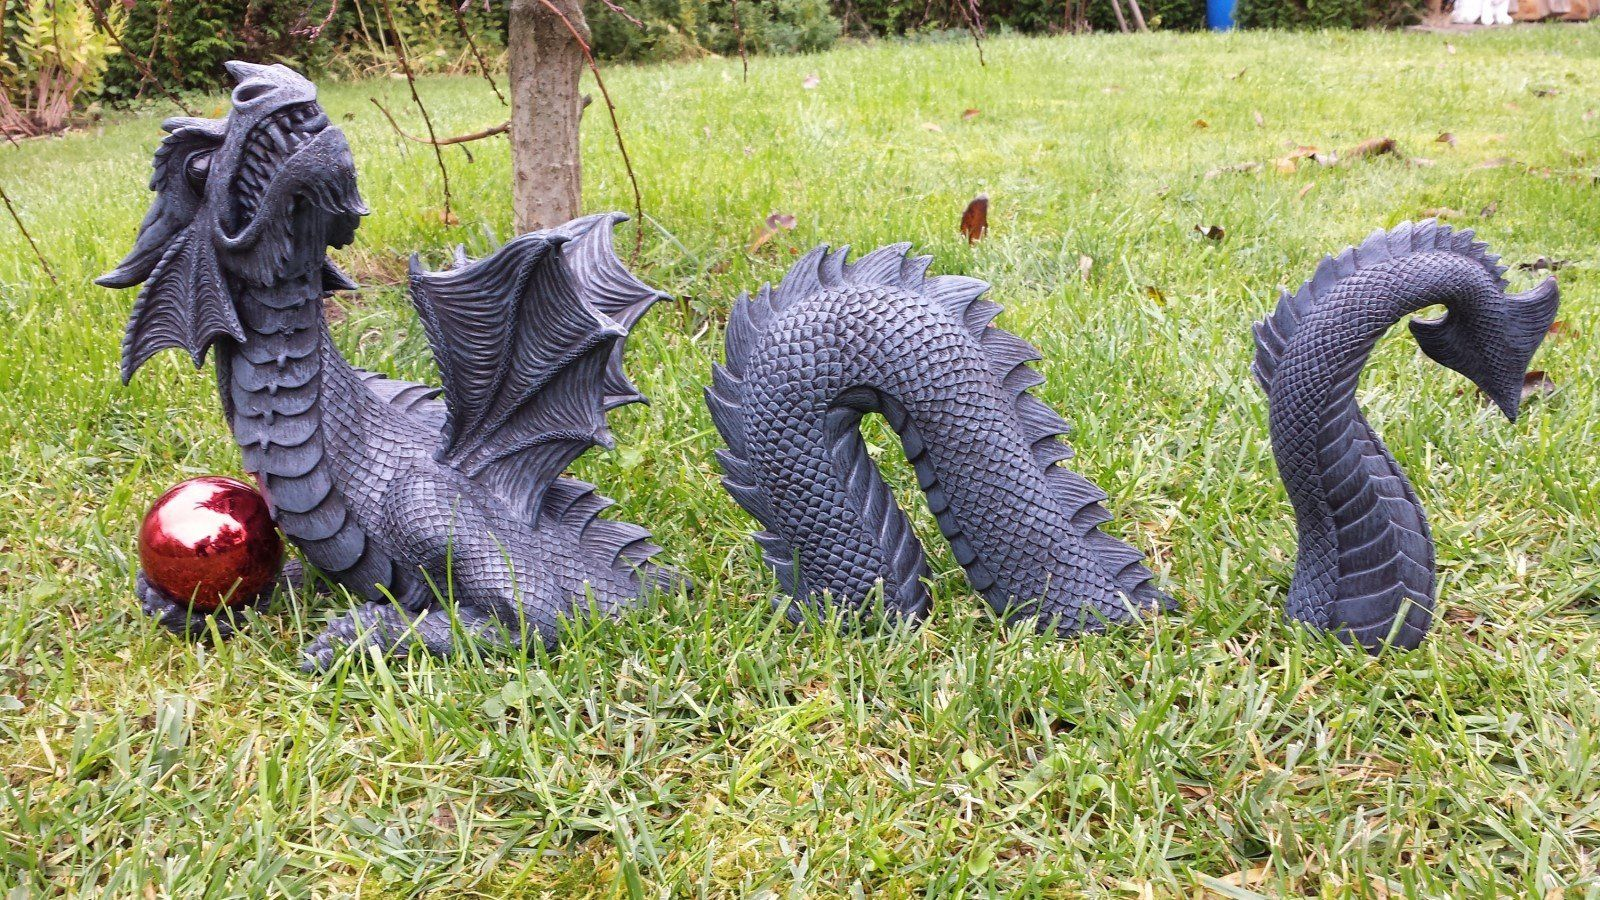 Large 3 Piece Dragon With Ball Figure For Garden Dragon Garden Fairy Garden Diy Garden Figures